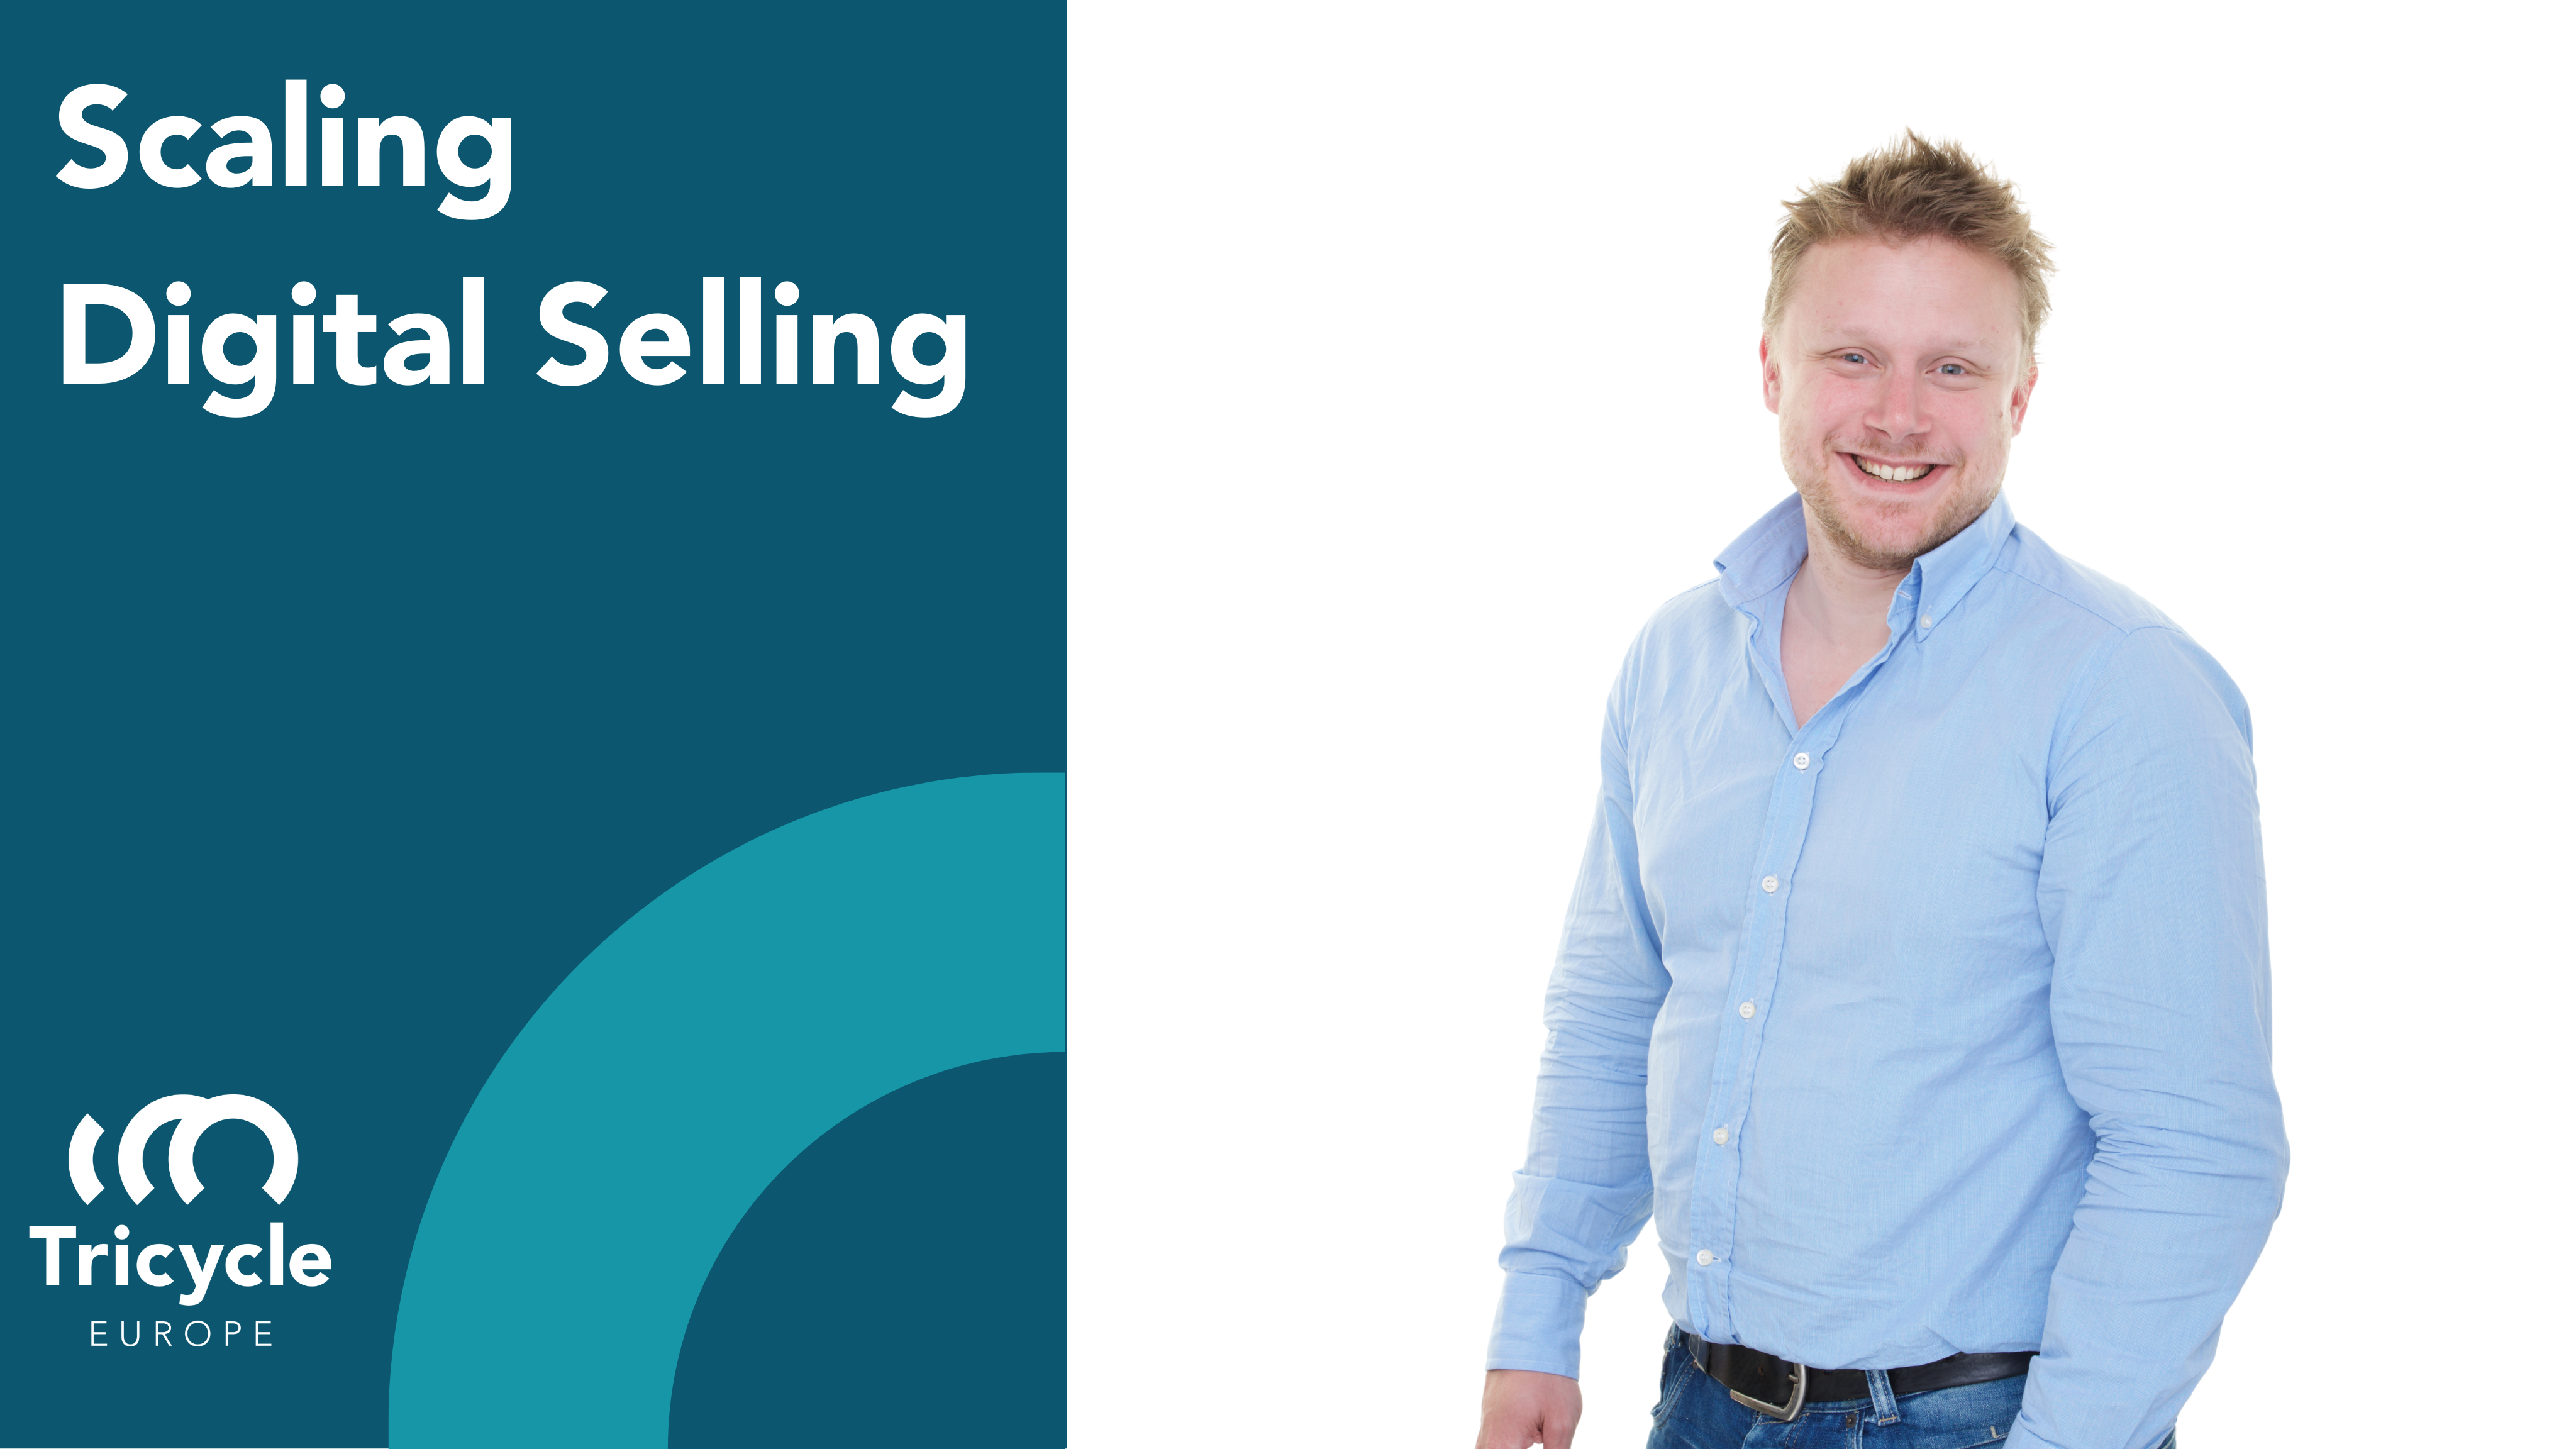 Scaling Digital Selling